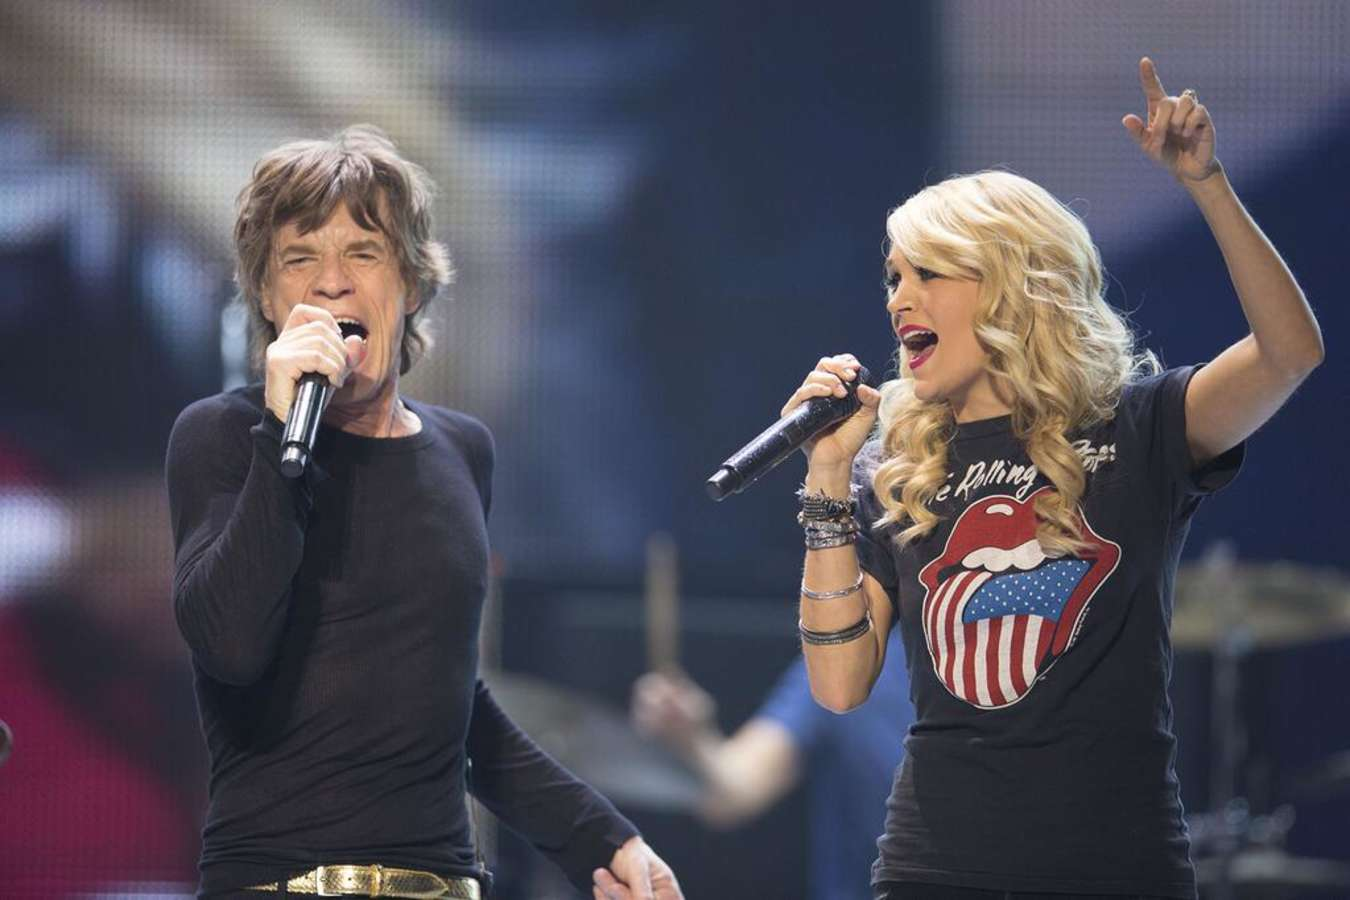 Carrie Underwood And The Rolling Stones On Stage In